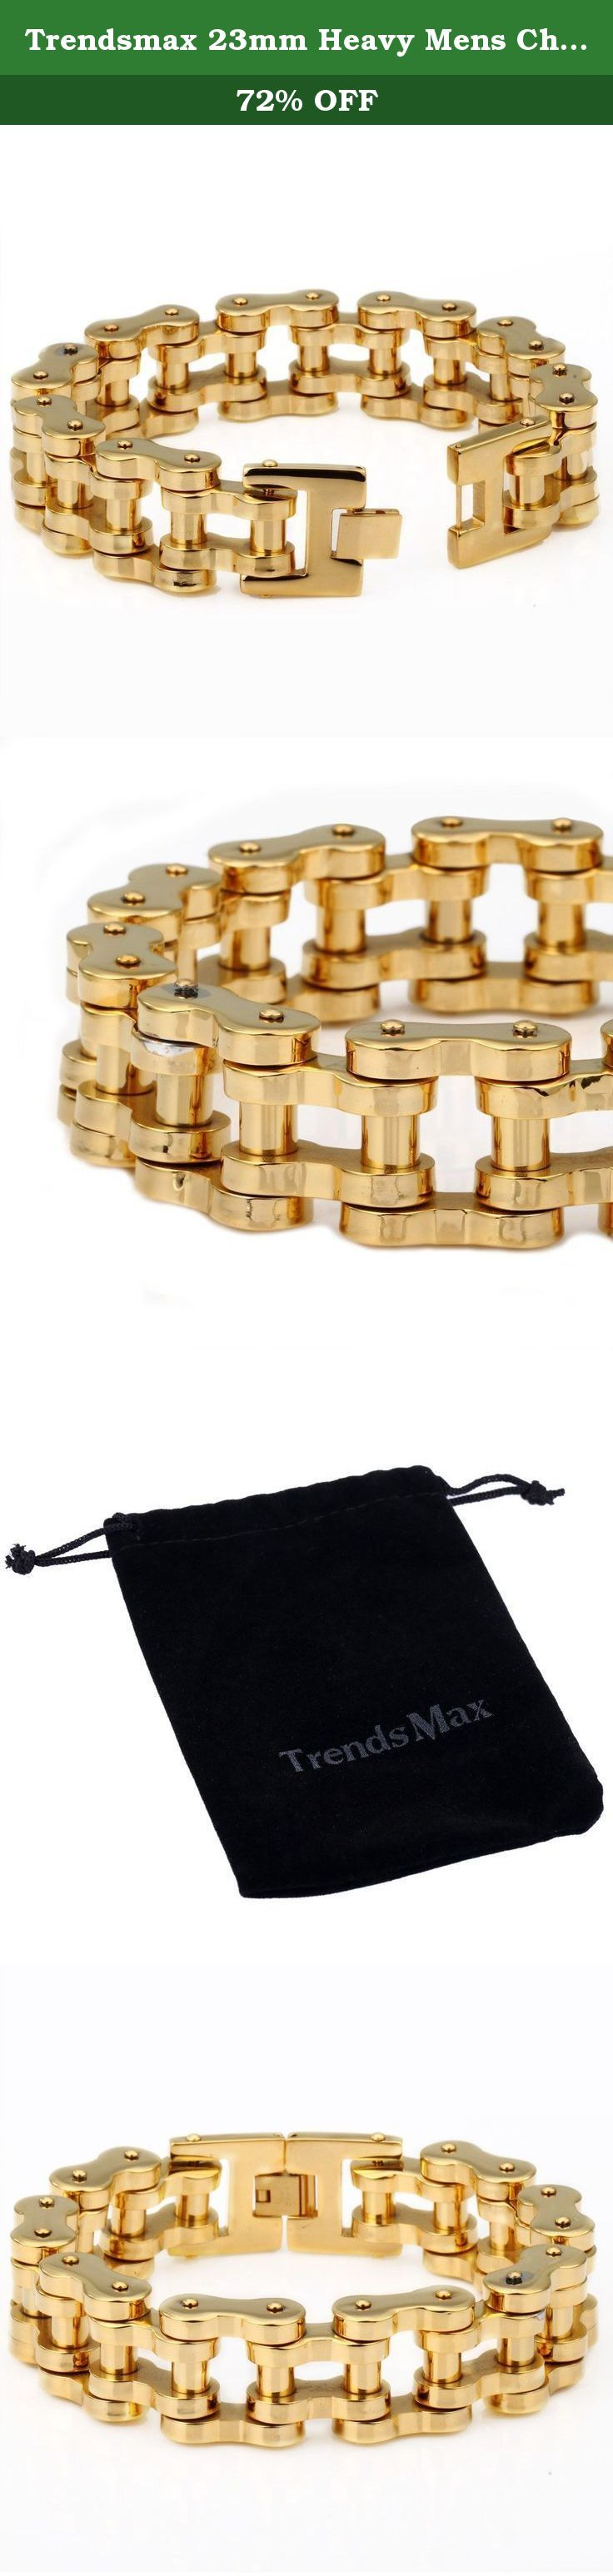 Trendsmax 23mm Heavy Mens Chain Boys Gold Tone 316L Stainless Steel Bracelet Biker Jewelry Motorcycle. Trendsmax 23mm Wide Heavy Mens Chain Gold Tone Biker Jewelry Motorcycle Chain 316L Stainless Steel Bracelet,Material is 316L Stainless Steel,High Quanlity! Fashion Bracelet.Perfect Gift for Father's Day, Christmas Gift.